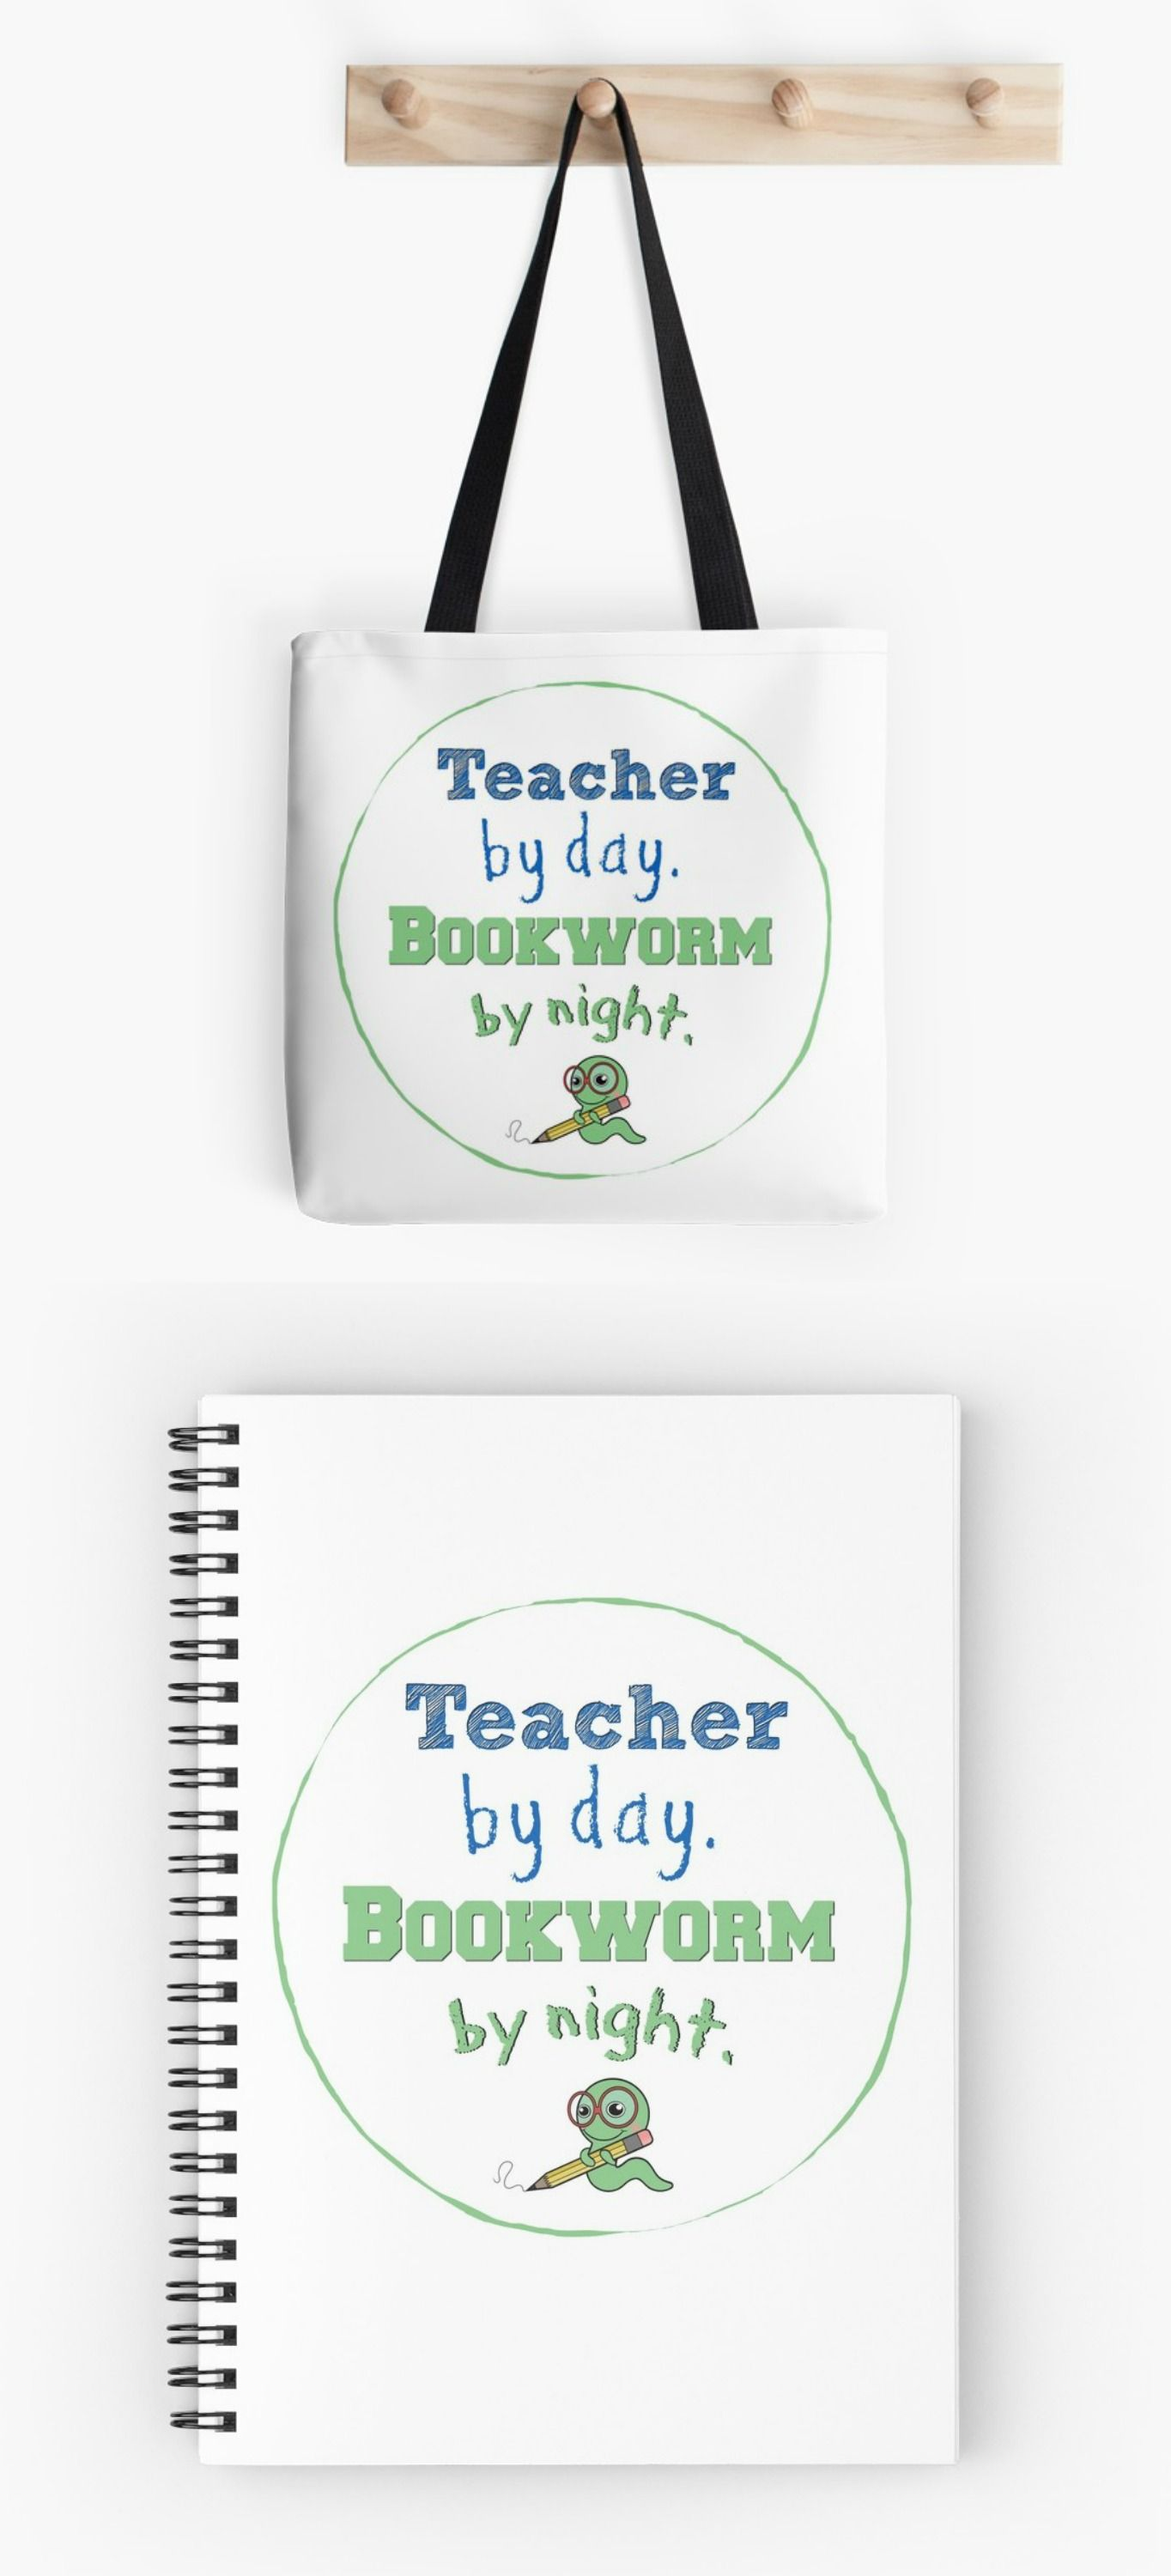 Teacher by day. Bookworm by night. I LOVE the book tote and spiral notebook the best but the pillow is cute too!! These make beautiful teacher gifts of self expression. 18 total products available! Support a teacher family too! (aff.link)